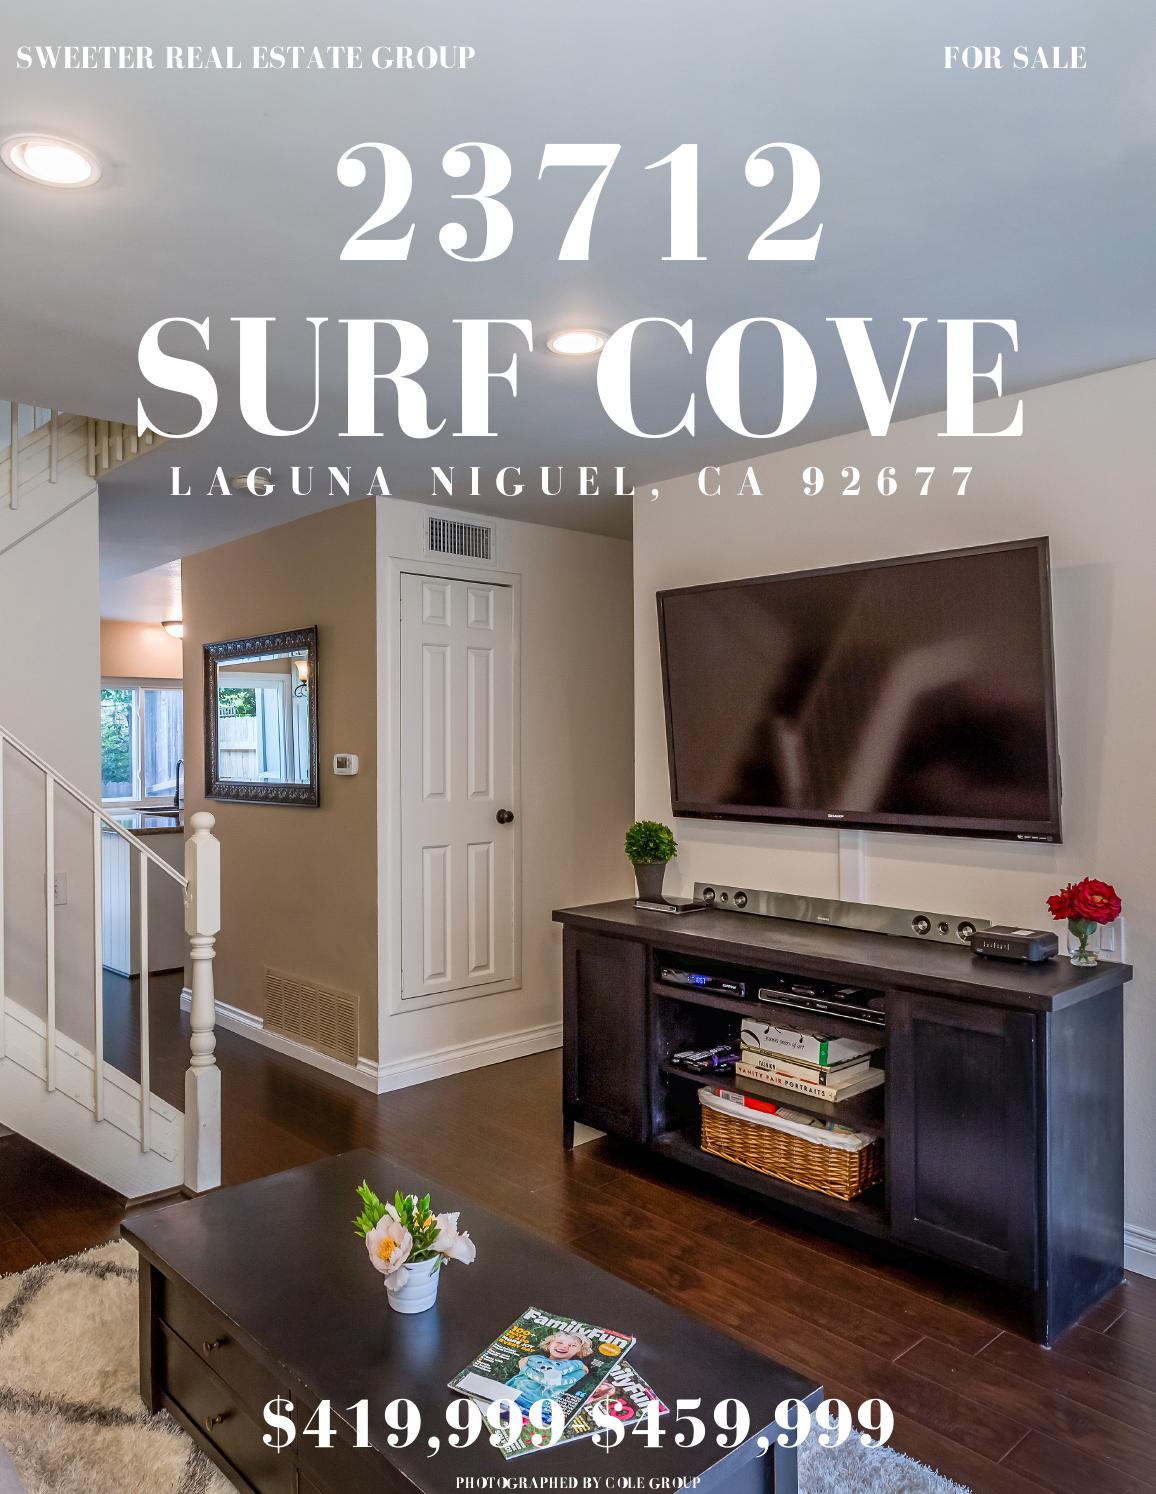 23712 Surf Cove Laguna Niguel CA 92677 By Sweeter Real